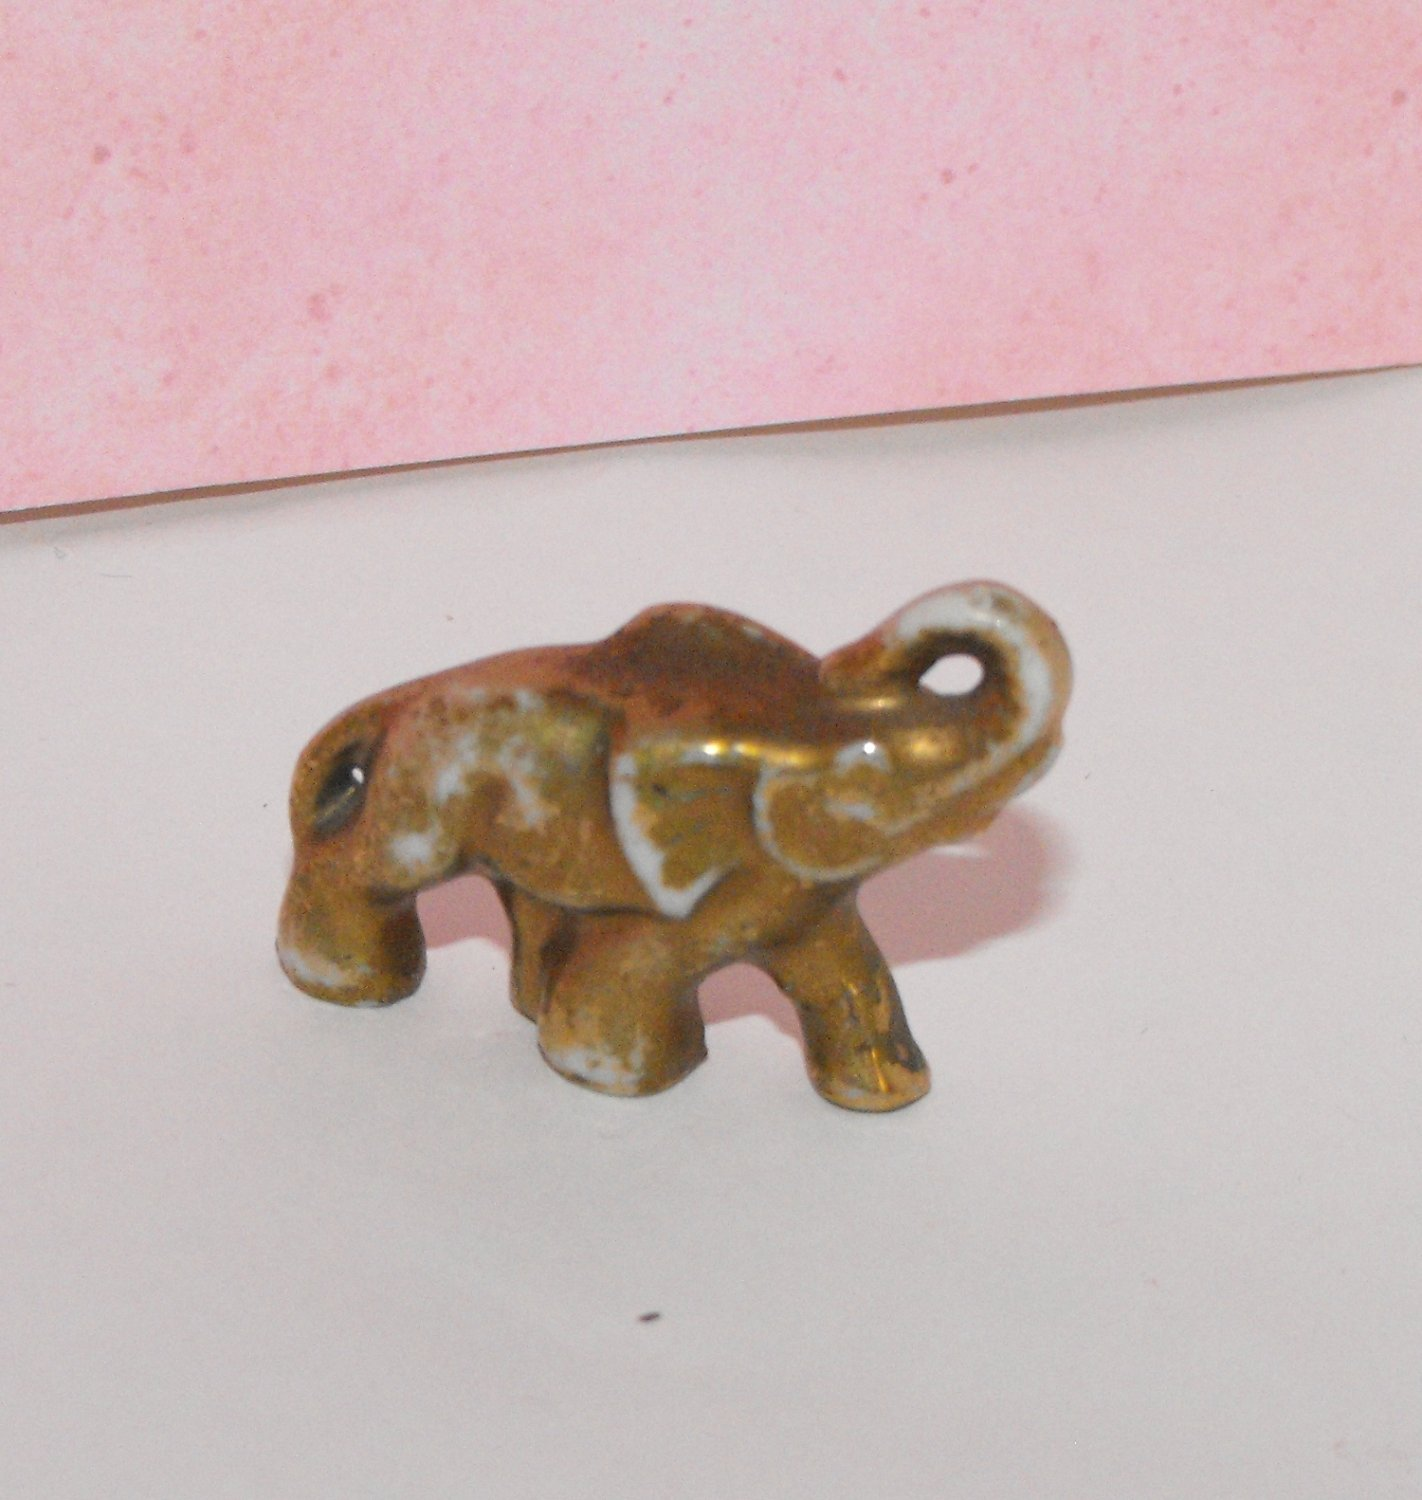 Small Gold Dusted Elephant Figurine Made in Japan